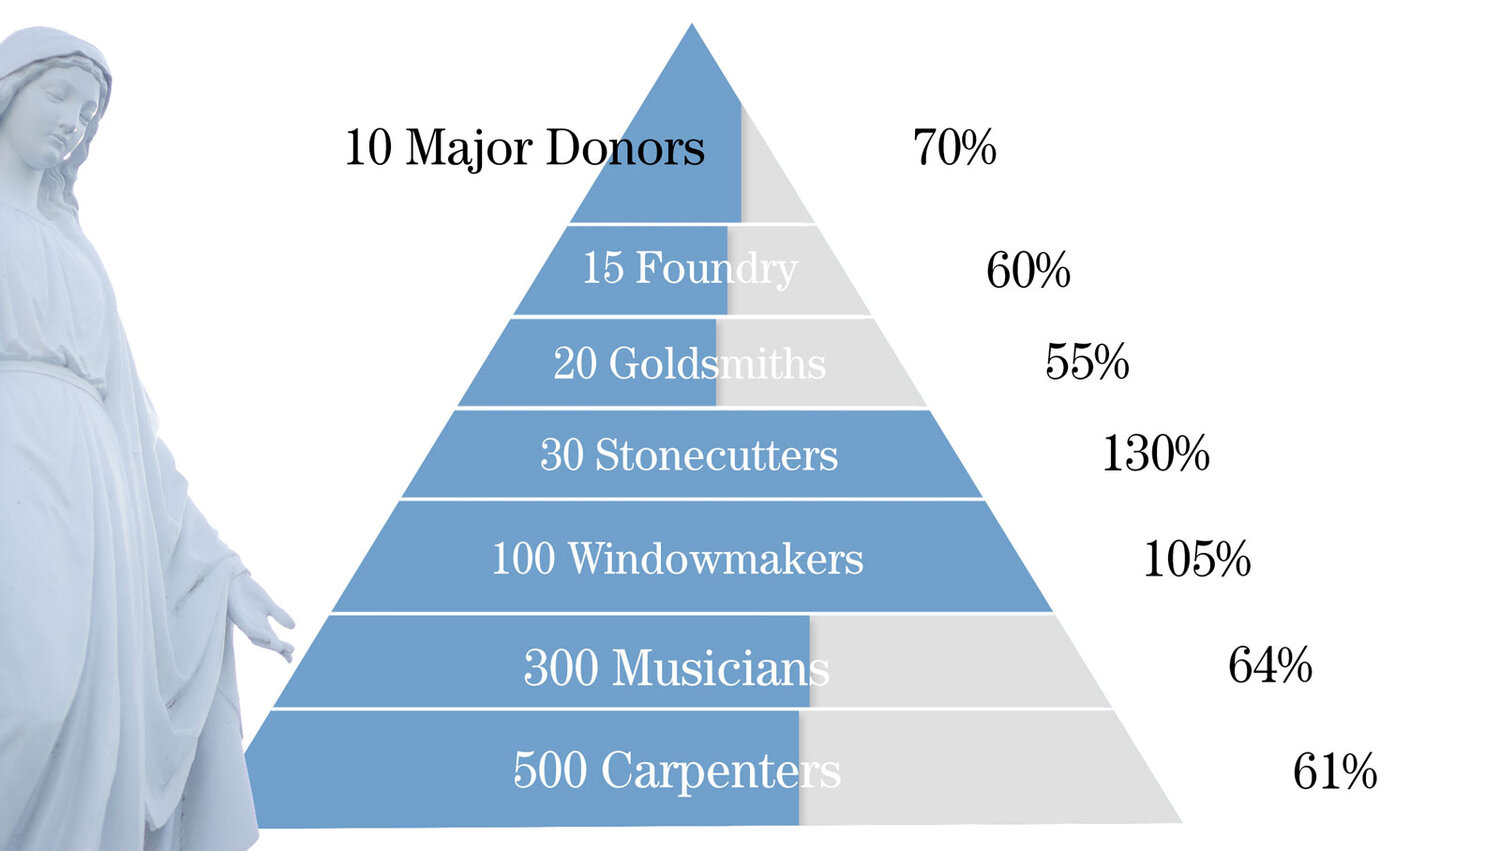 The percentages on the right depict the current number of donors in each guild.